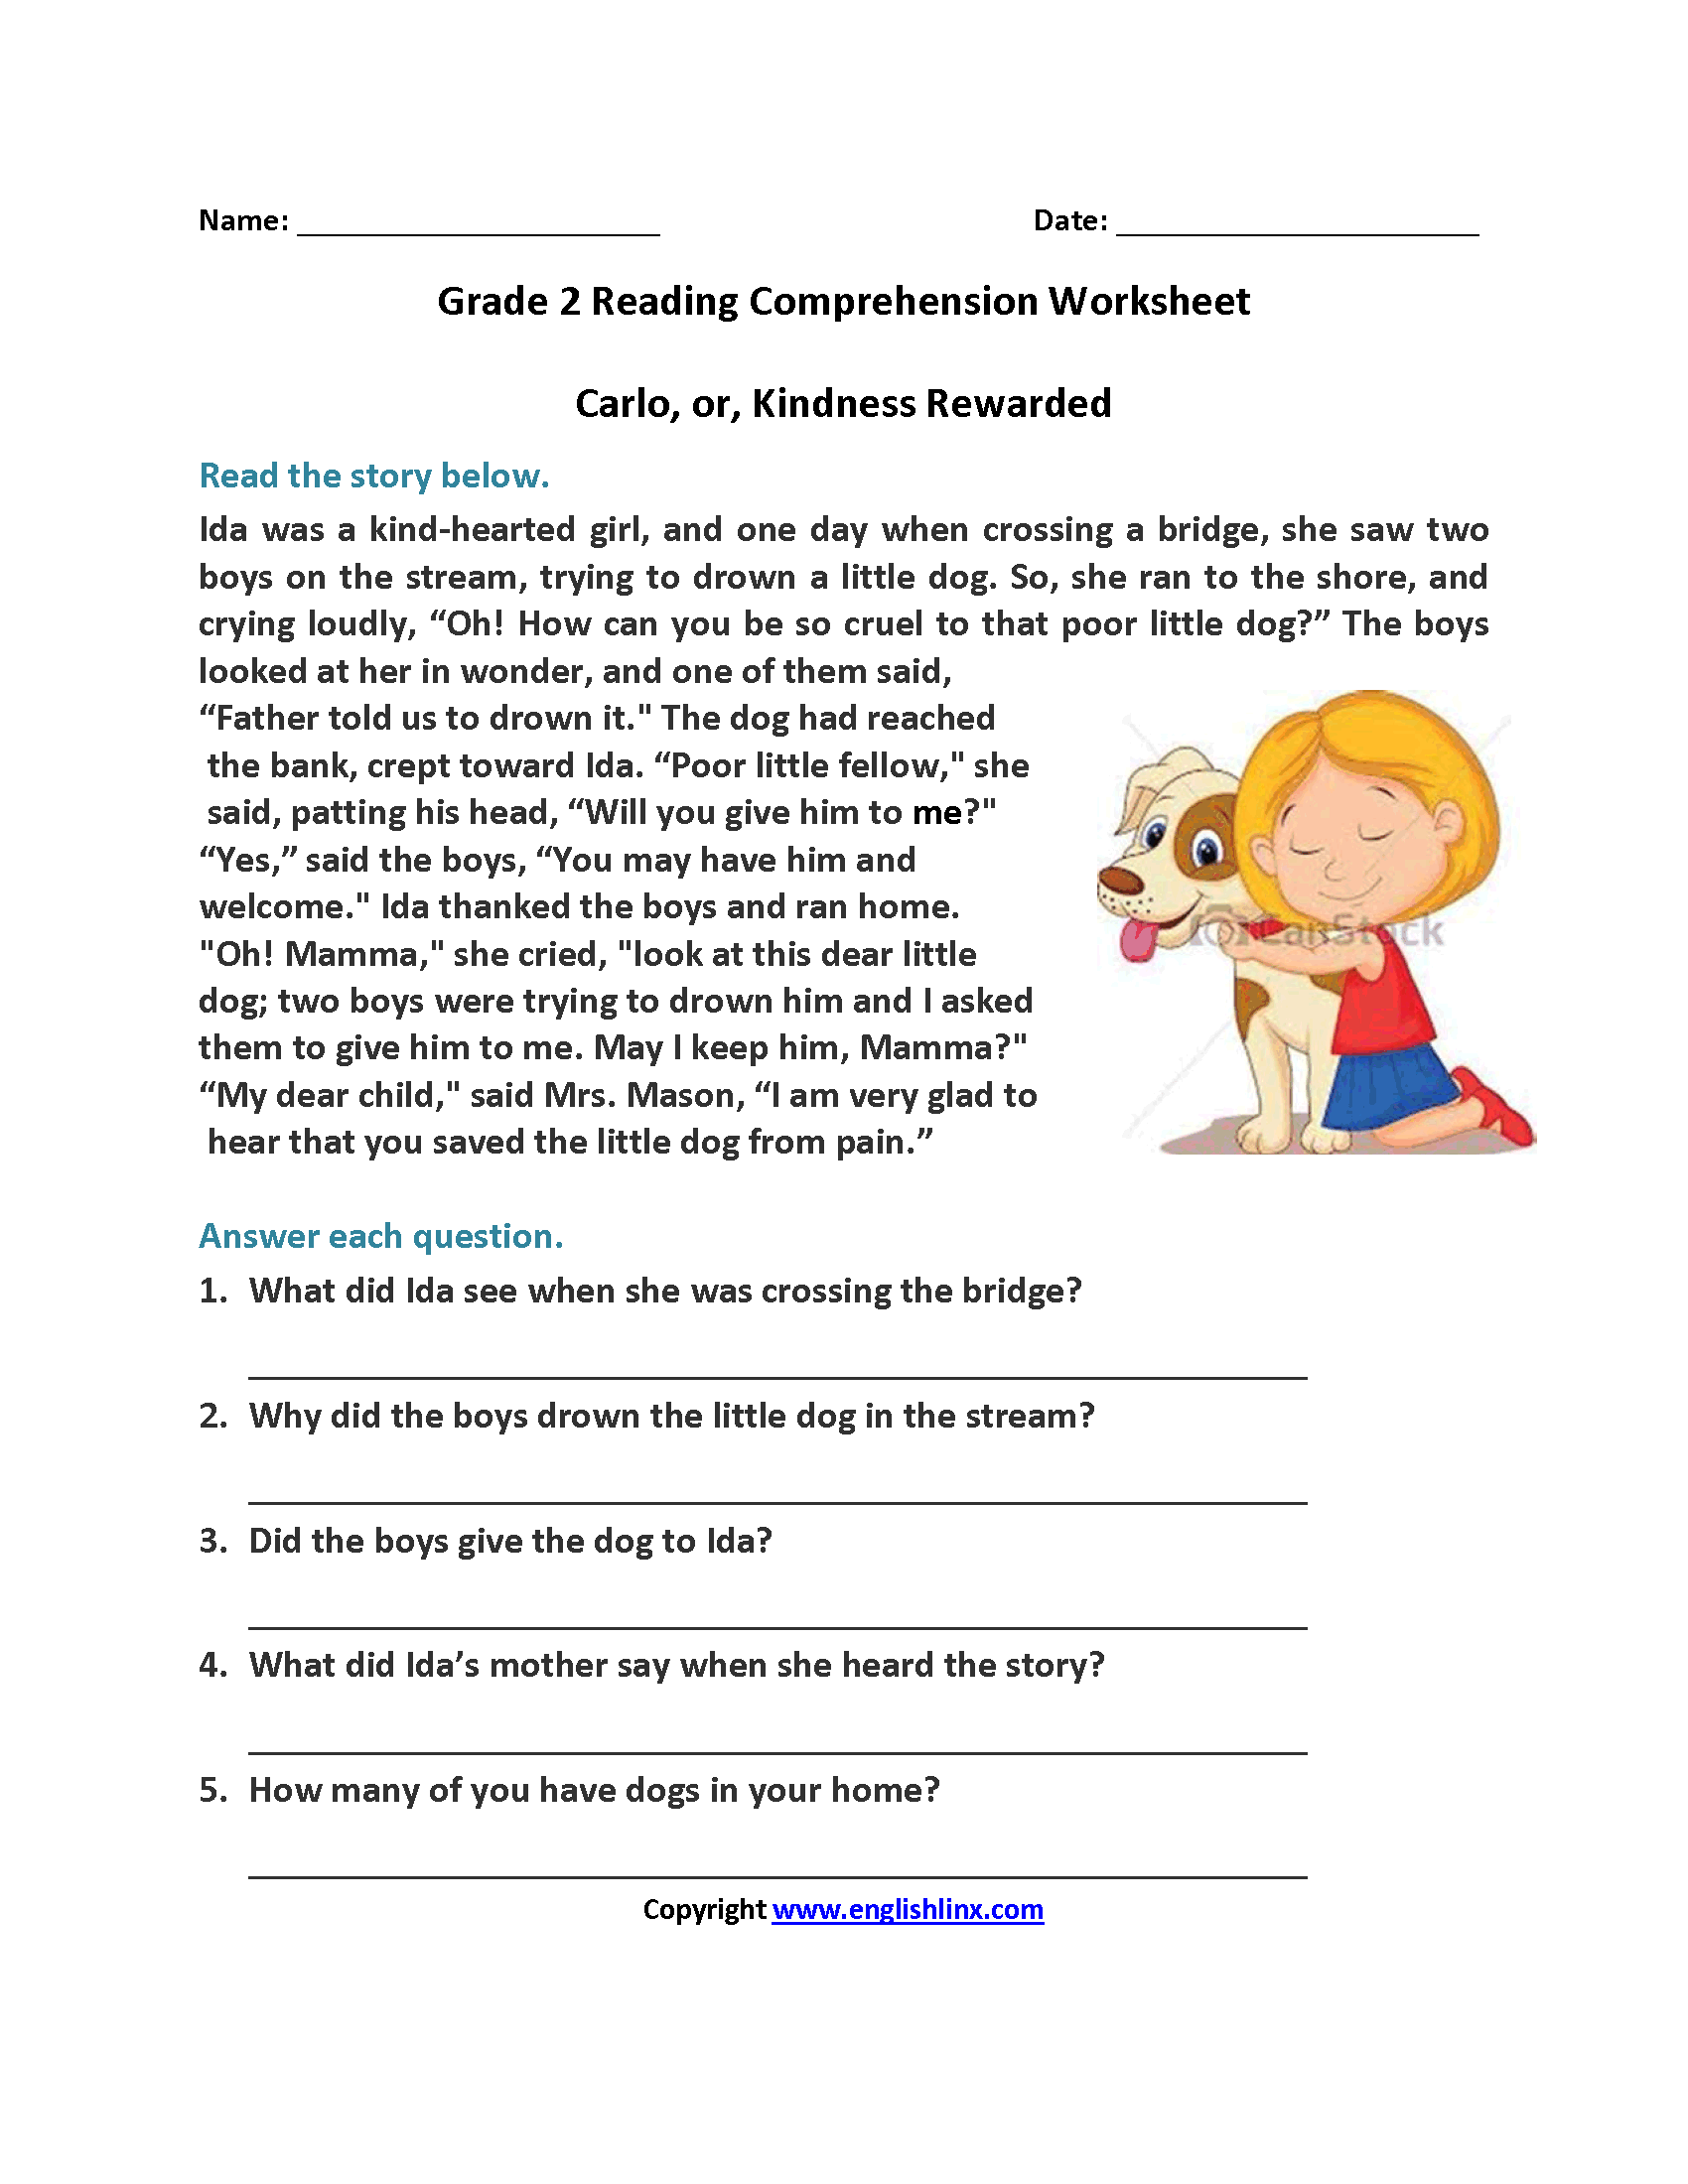 worksheet Reading Comprehension Worksheet 2nd Grade carlo or kindness rewarded second grade reading worksheets worksheets